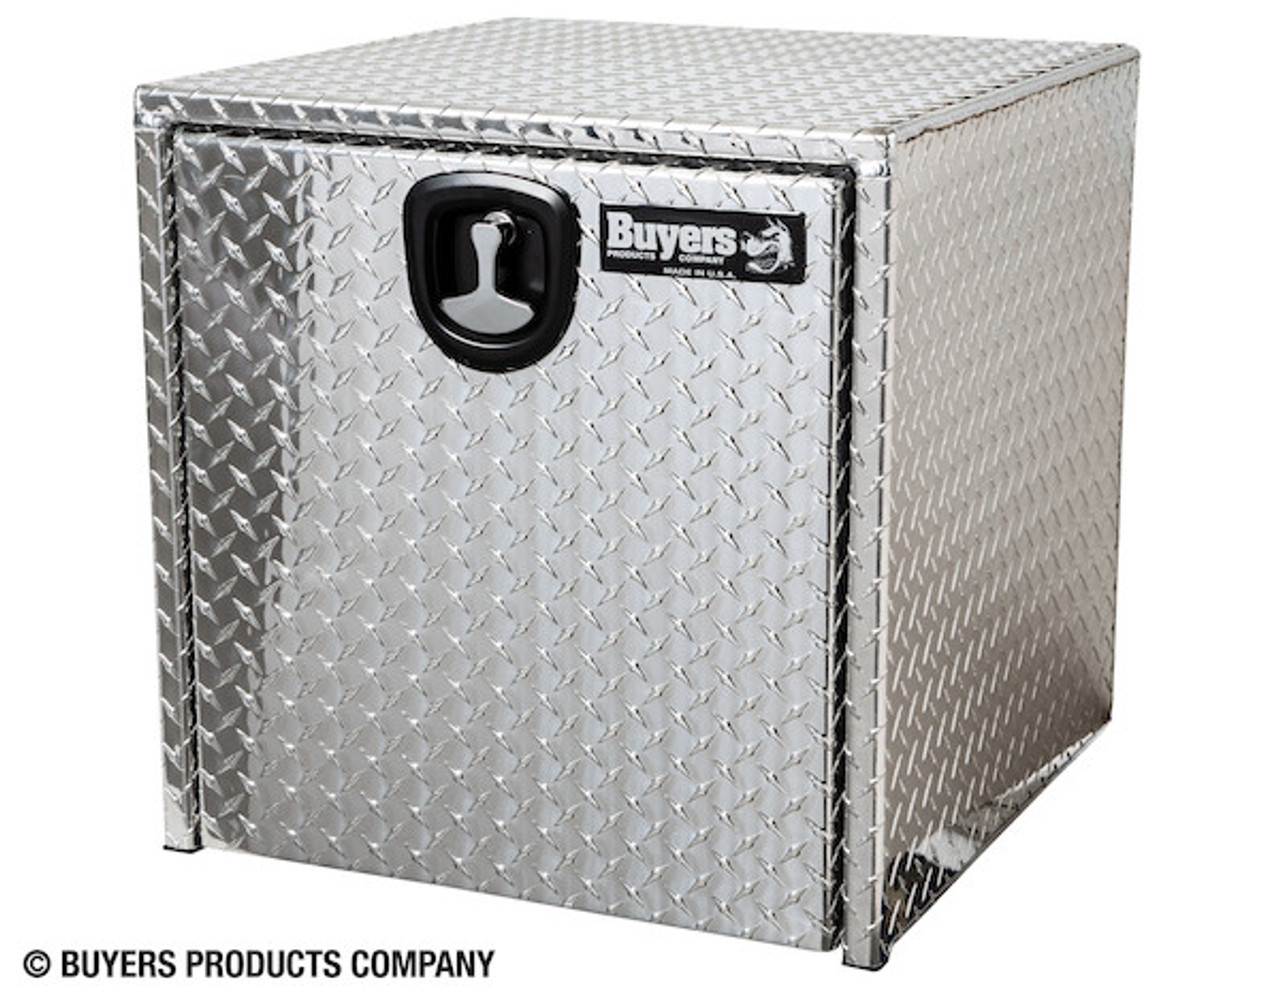 "1735130 BUYERS PRODUCTS DIAMOND TREAD ALUMINUM UNDERBODY TRUCK TOOLBOX WITH 3-PT. LATCH 24""Hx24""Dx24""W"